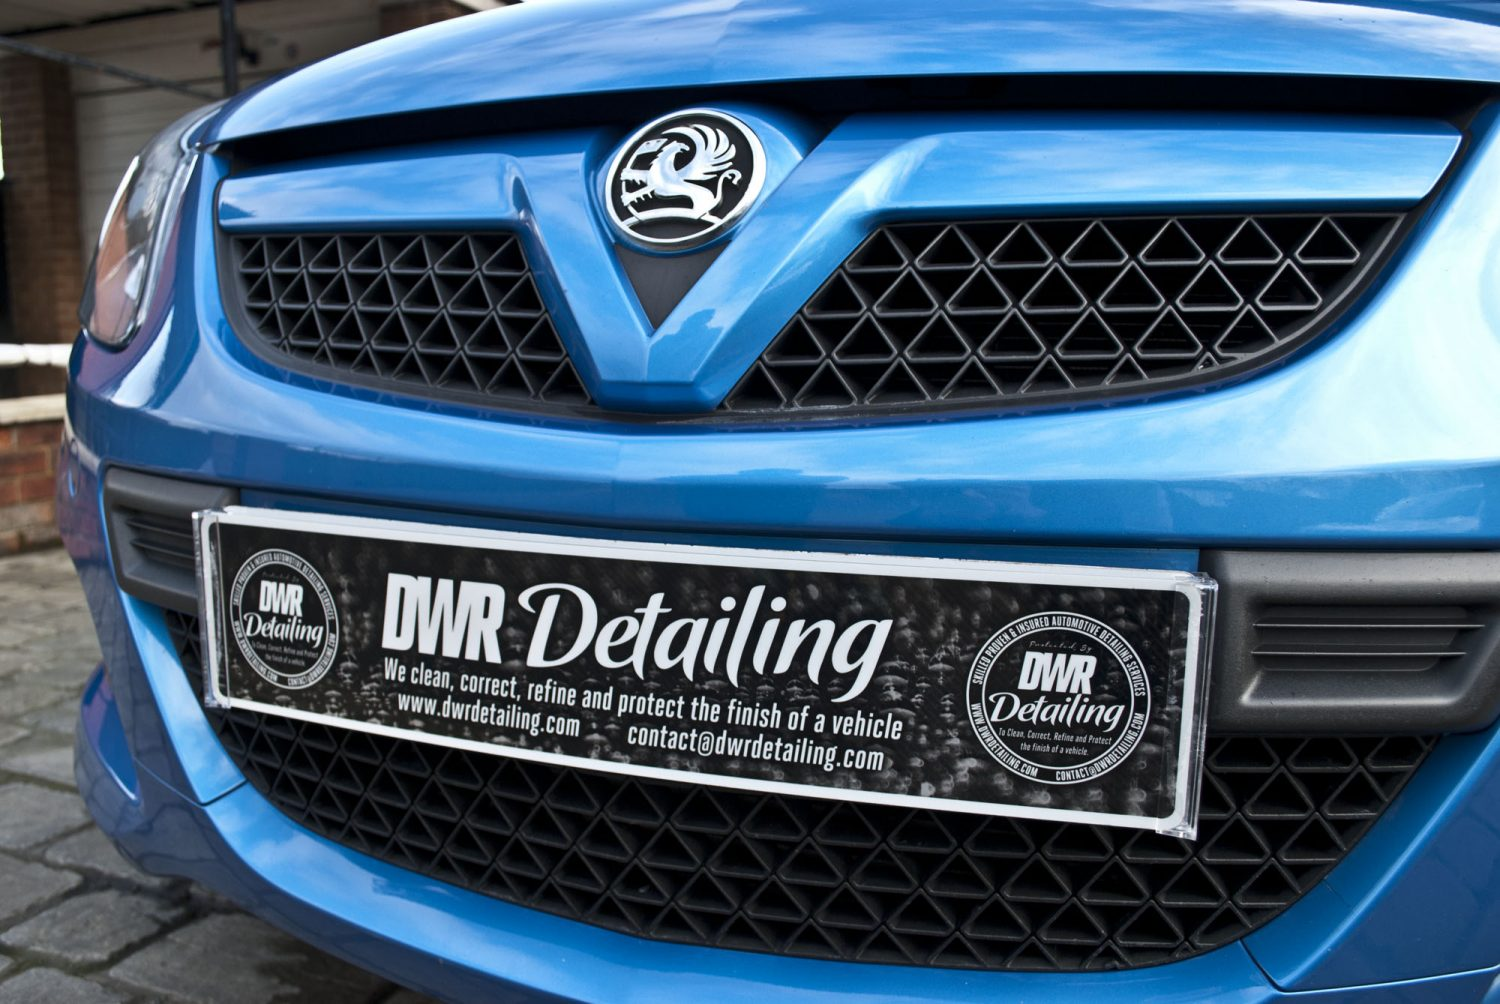 Vauxhall Corsa VXR Detailed by DWR Detailing